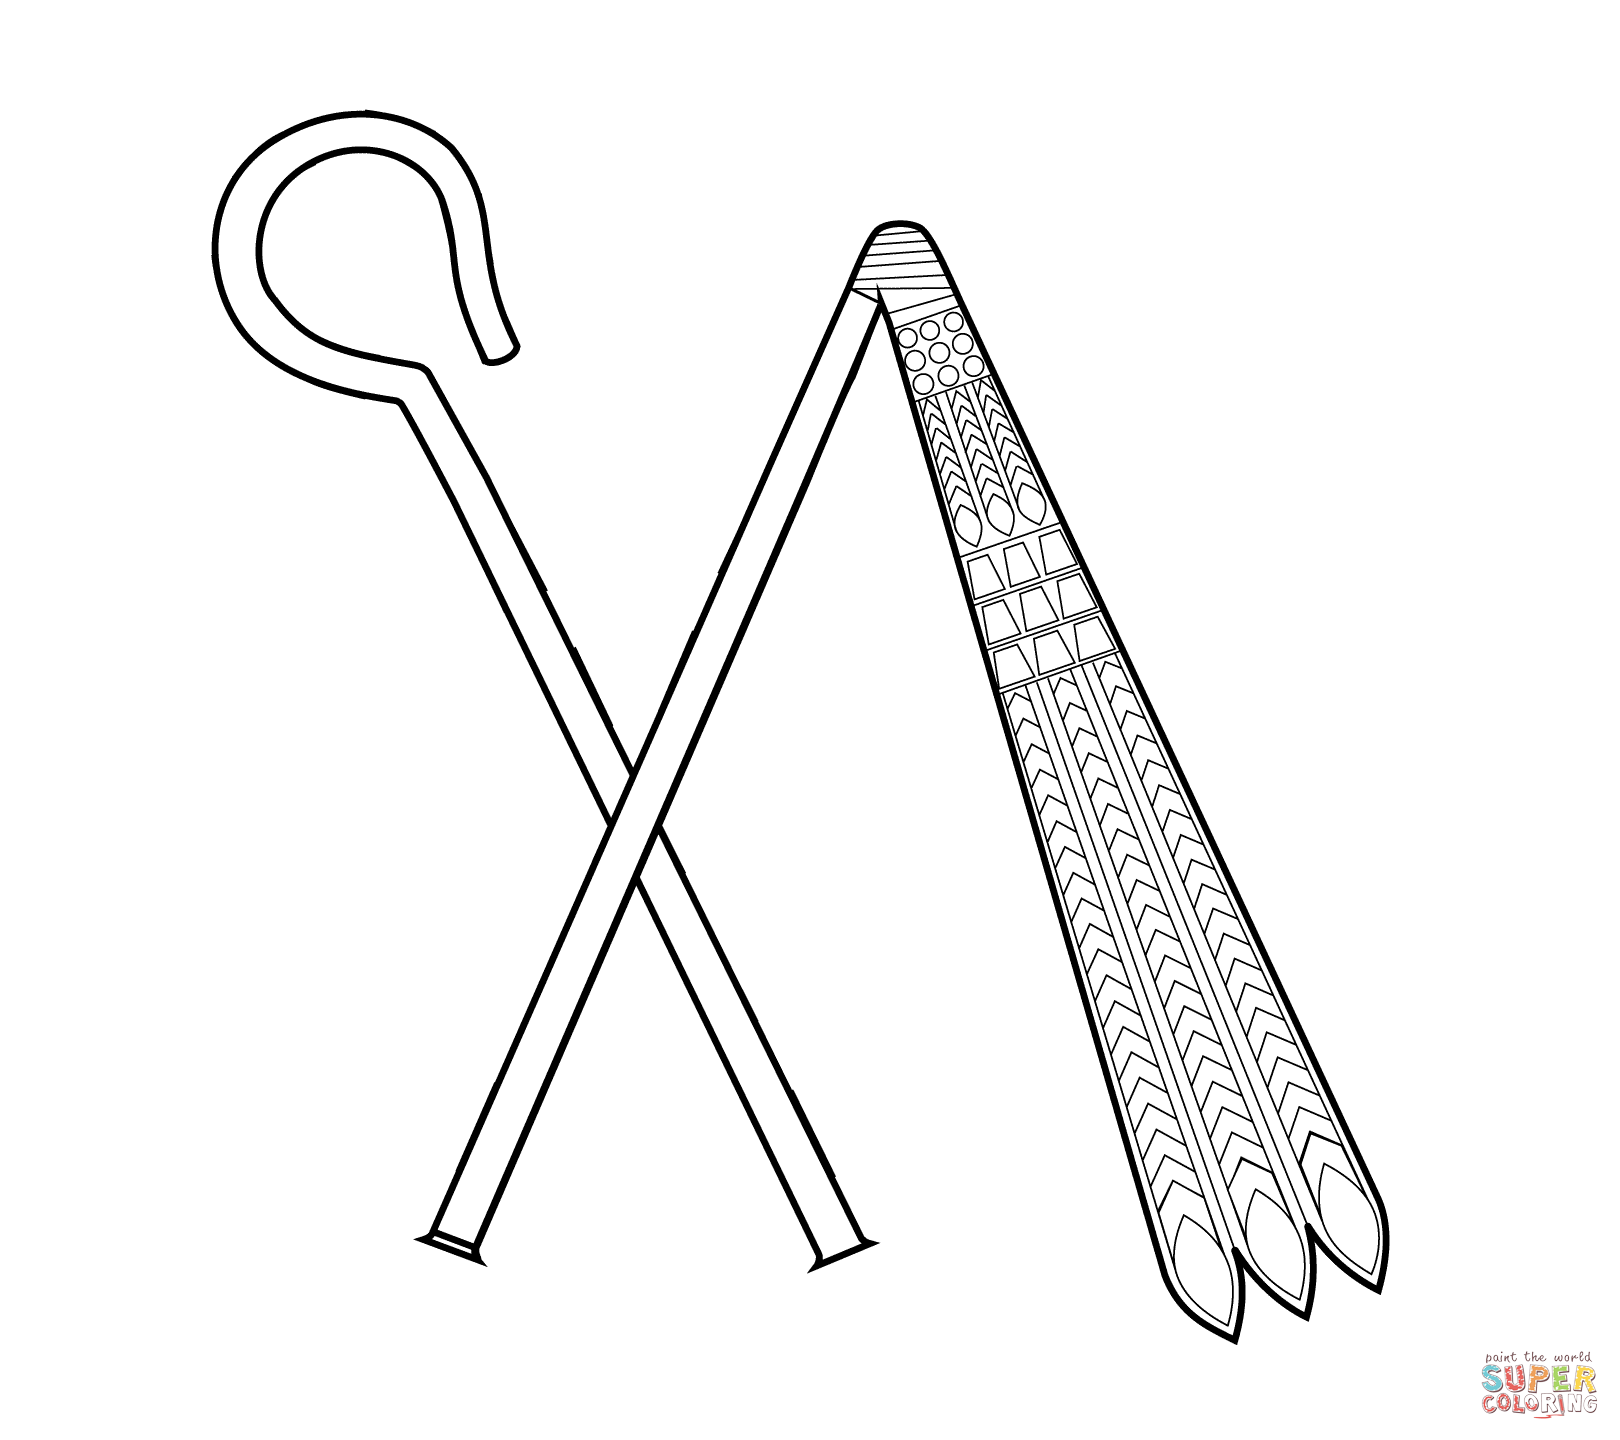 1620x1440 Crook And Flail Coloring Page Free Printable Pages